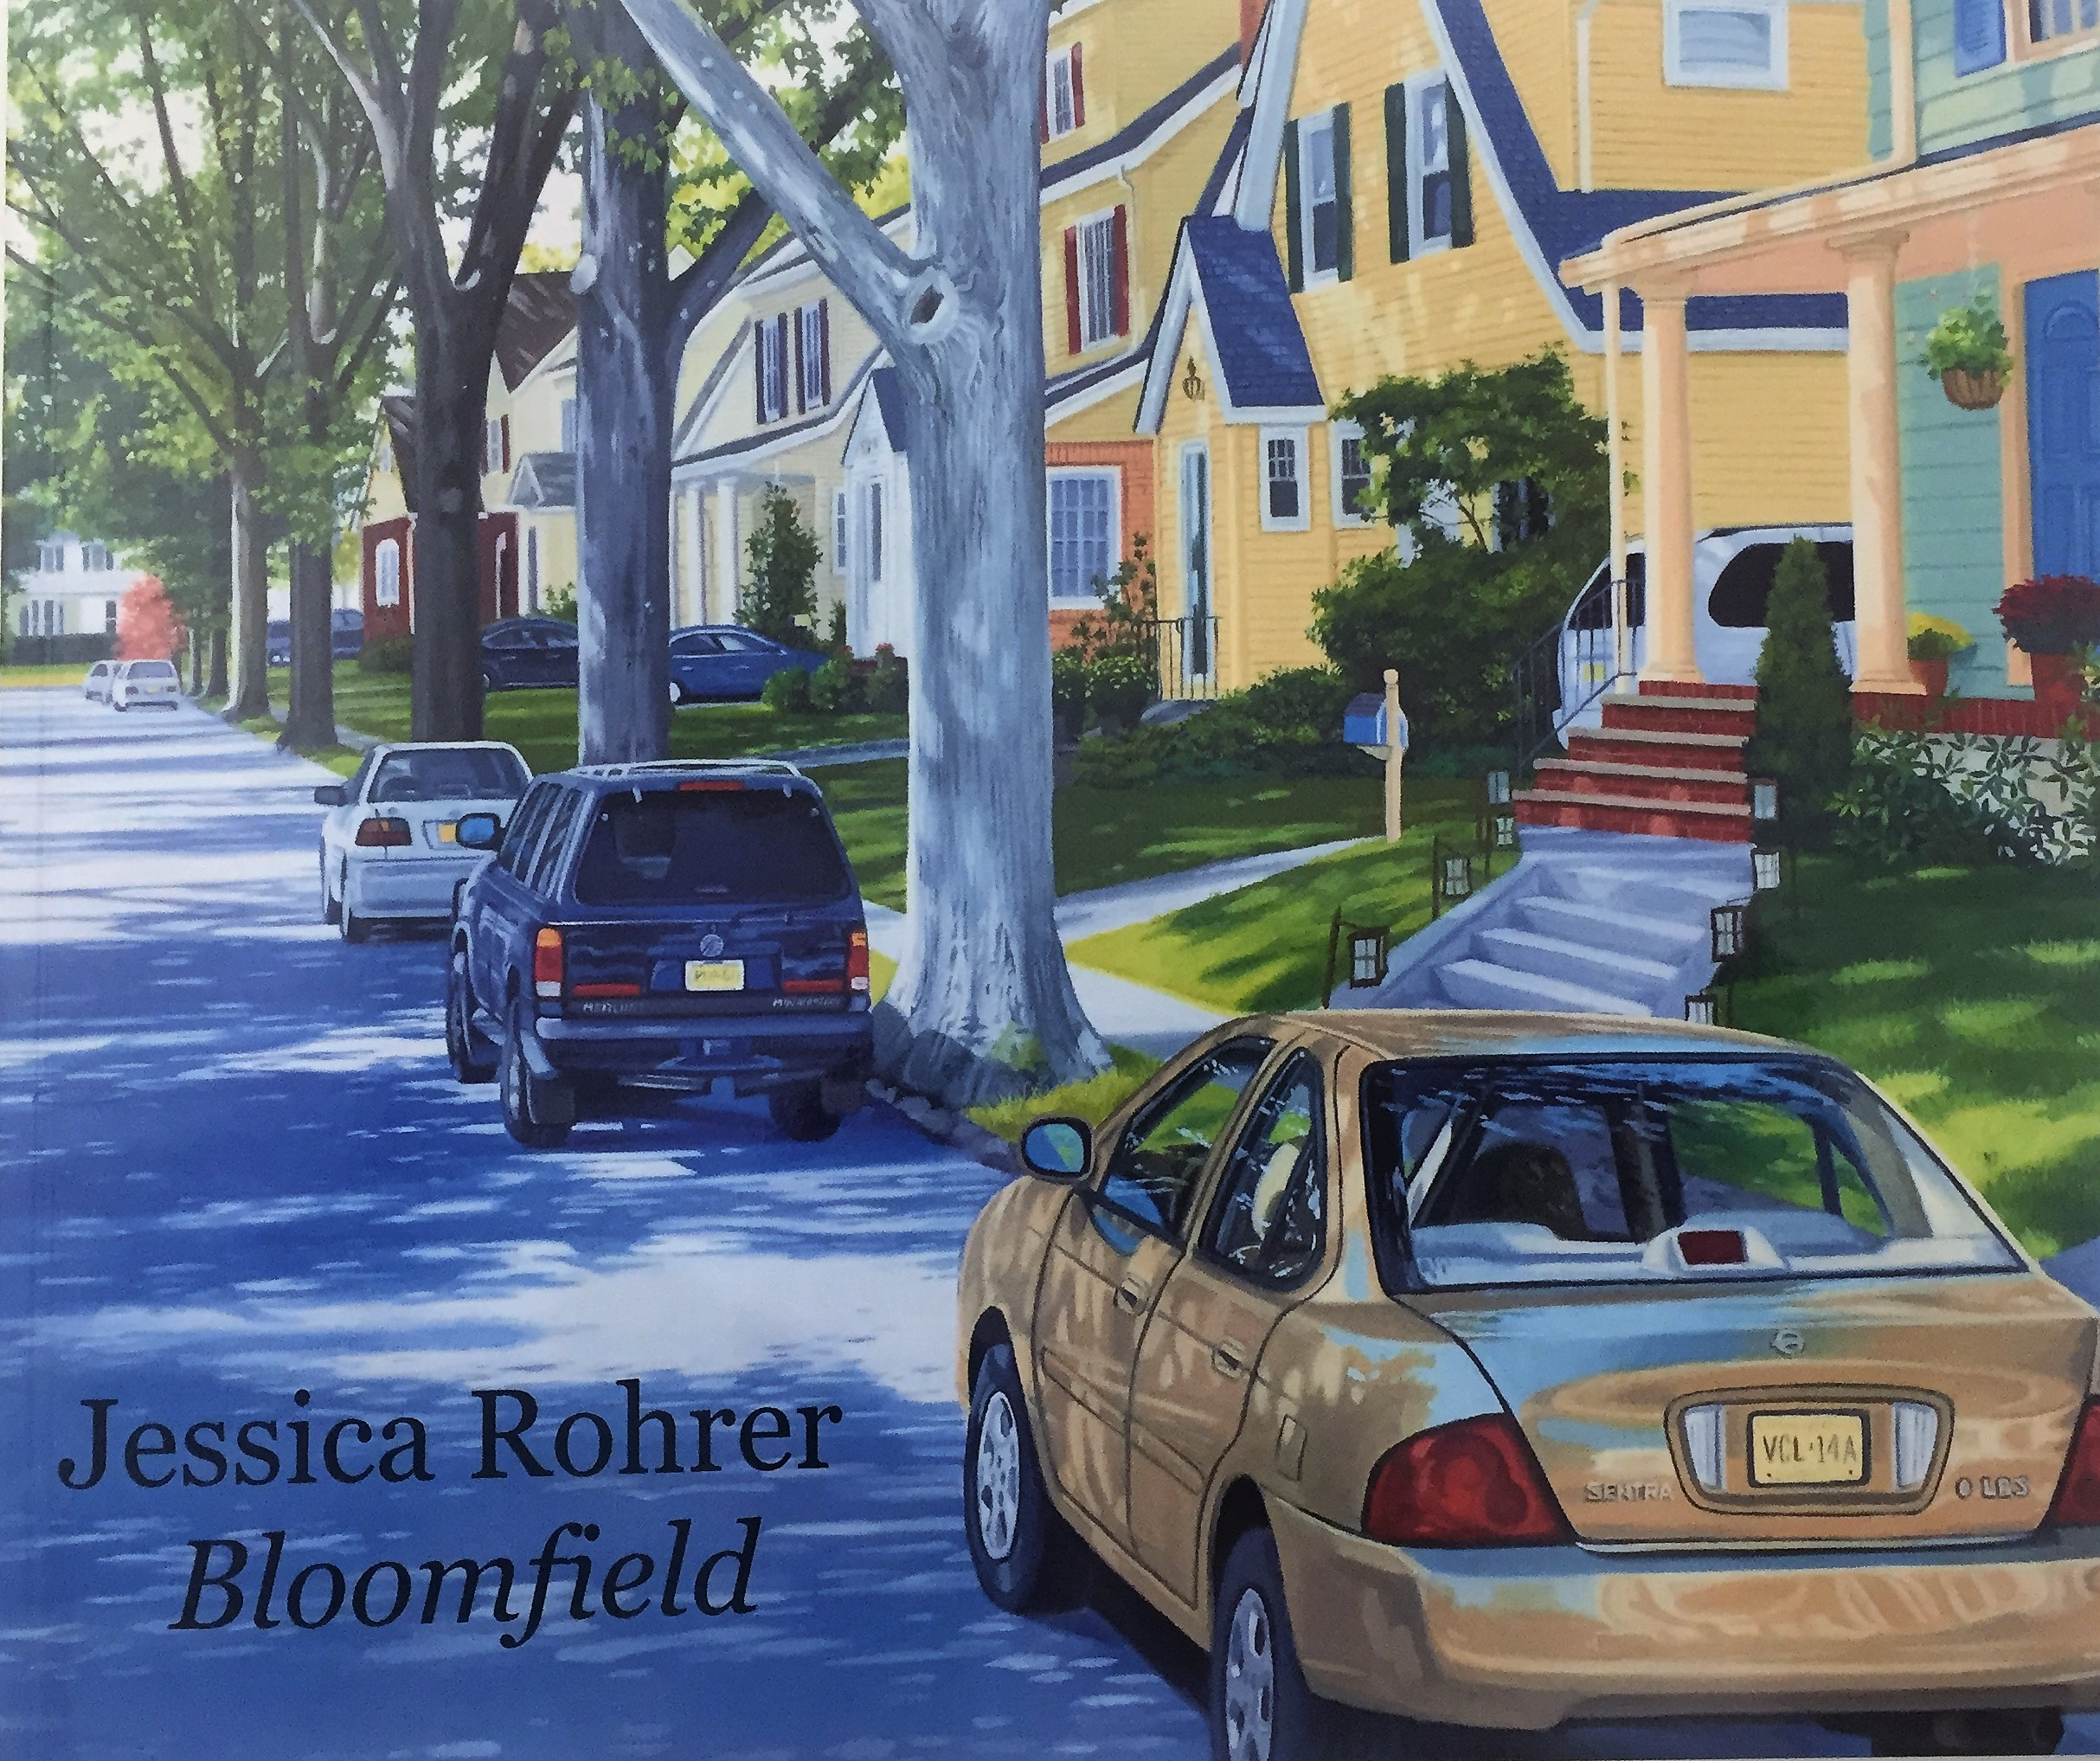 Bloomfield  Full Color, 46 Pages  Softcover $33.11    Purchase